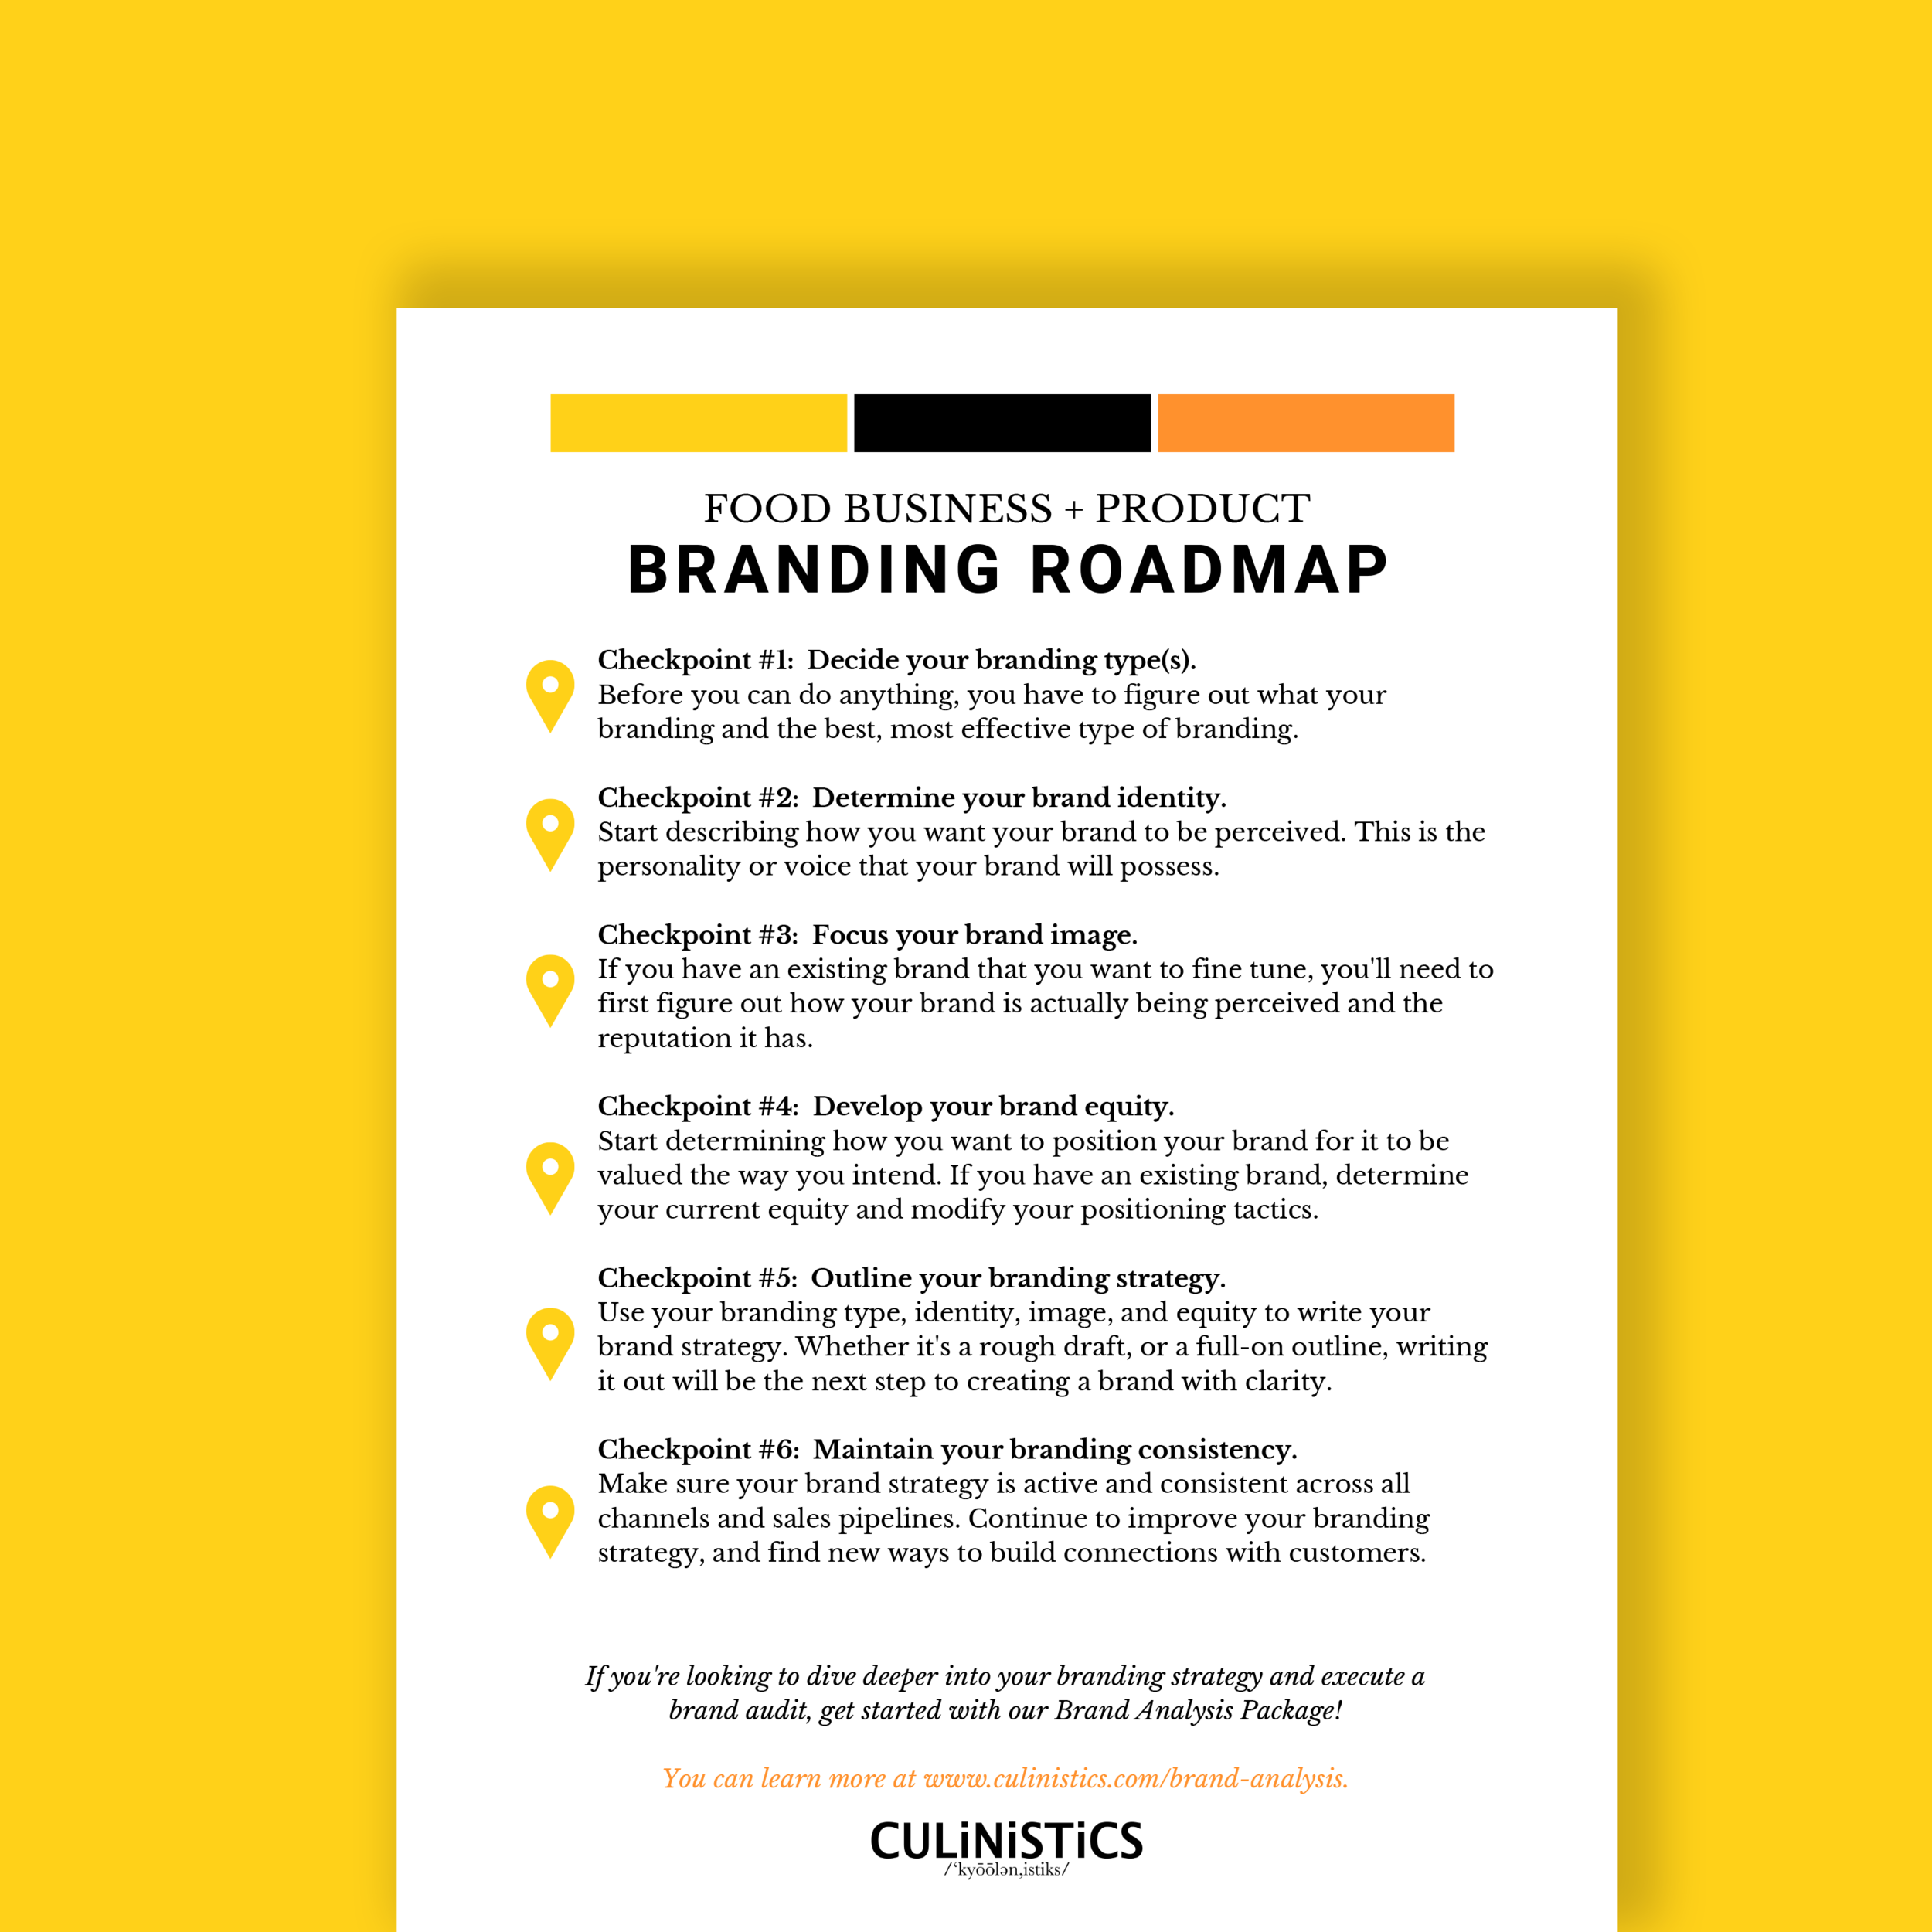 5 types of branding in the food industry & how to choose the right type for your brand (+ a free brand roadmap pdf)